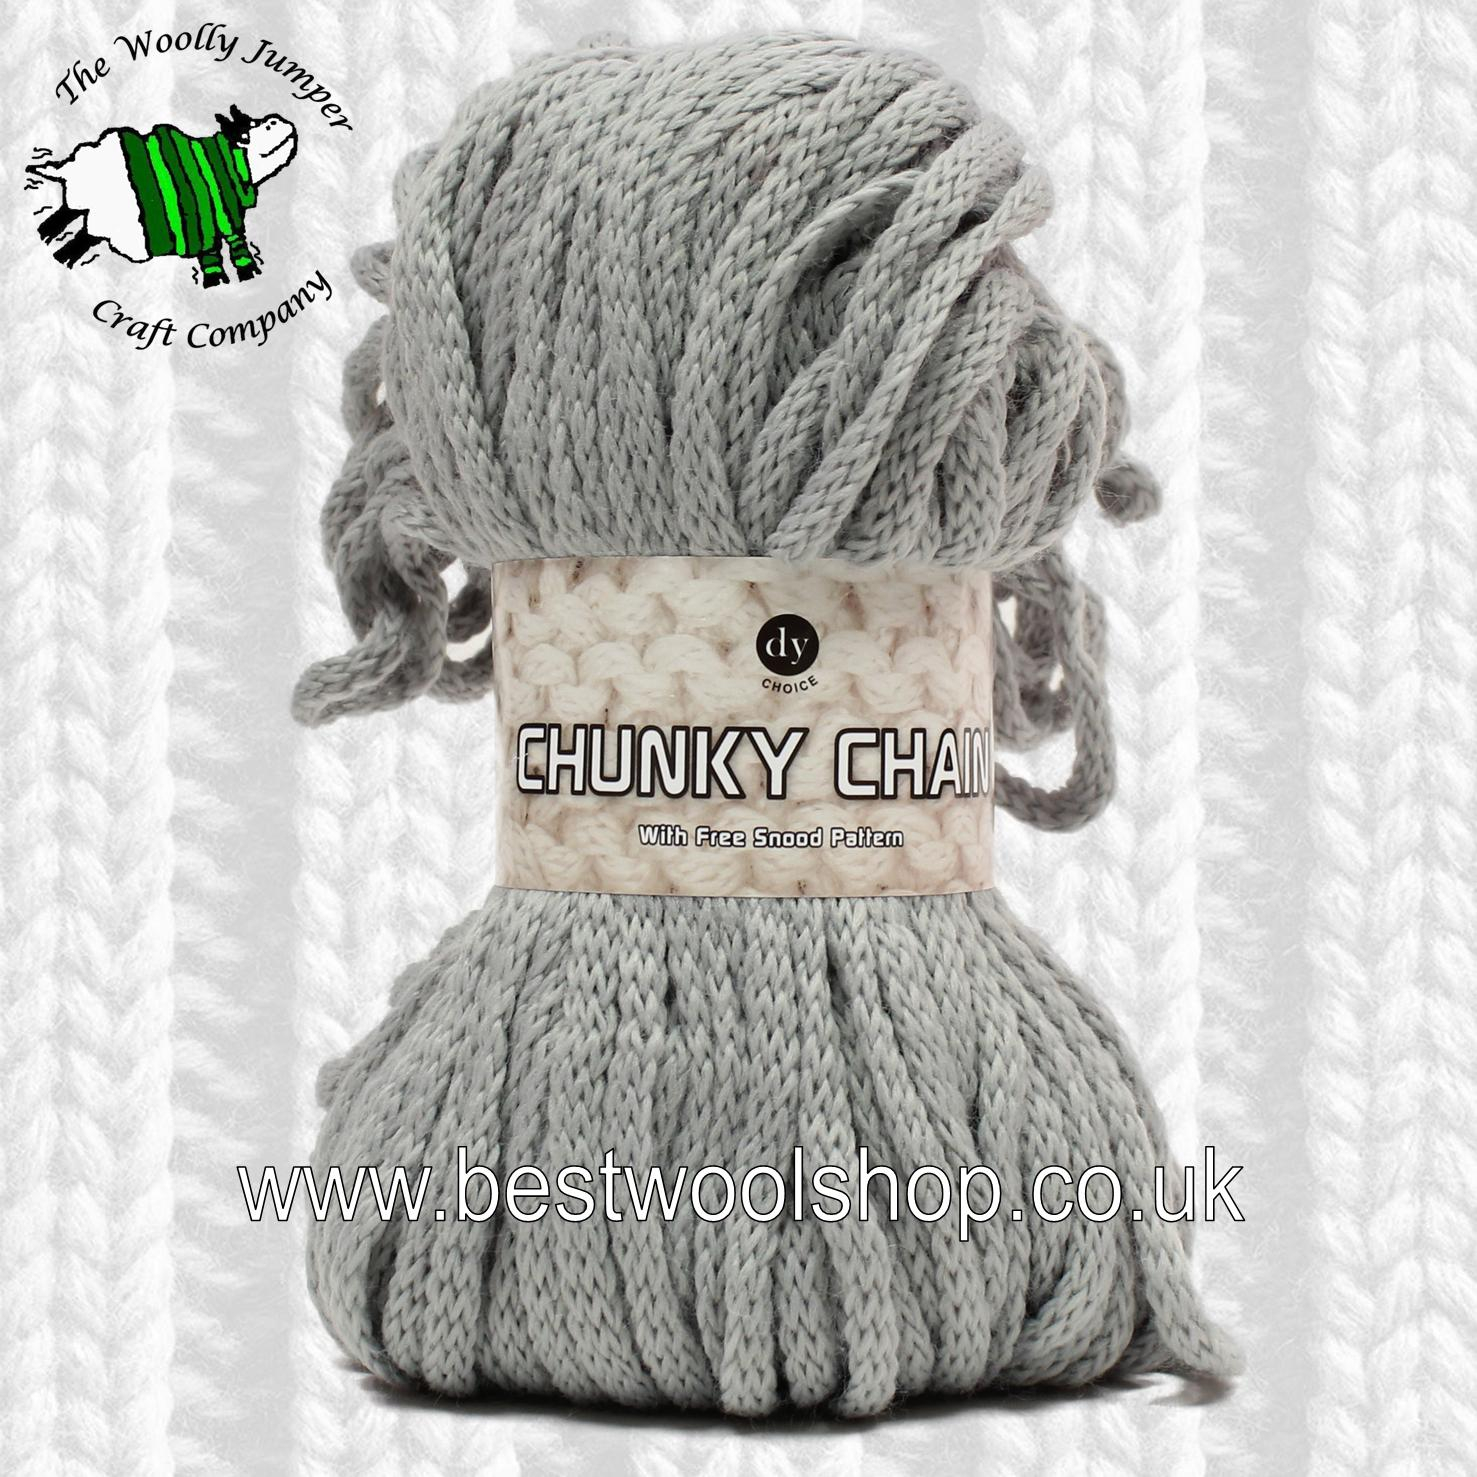 Free Knitting Patterns For Super Chunky Yarn 602 Silver Dy Choice Chunky Chain Super Chunky Knitting Crochet Yarn From Designer Yarns With Free Snood Knitting Pattern